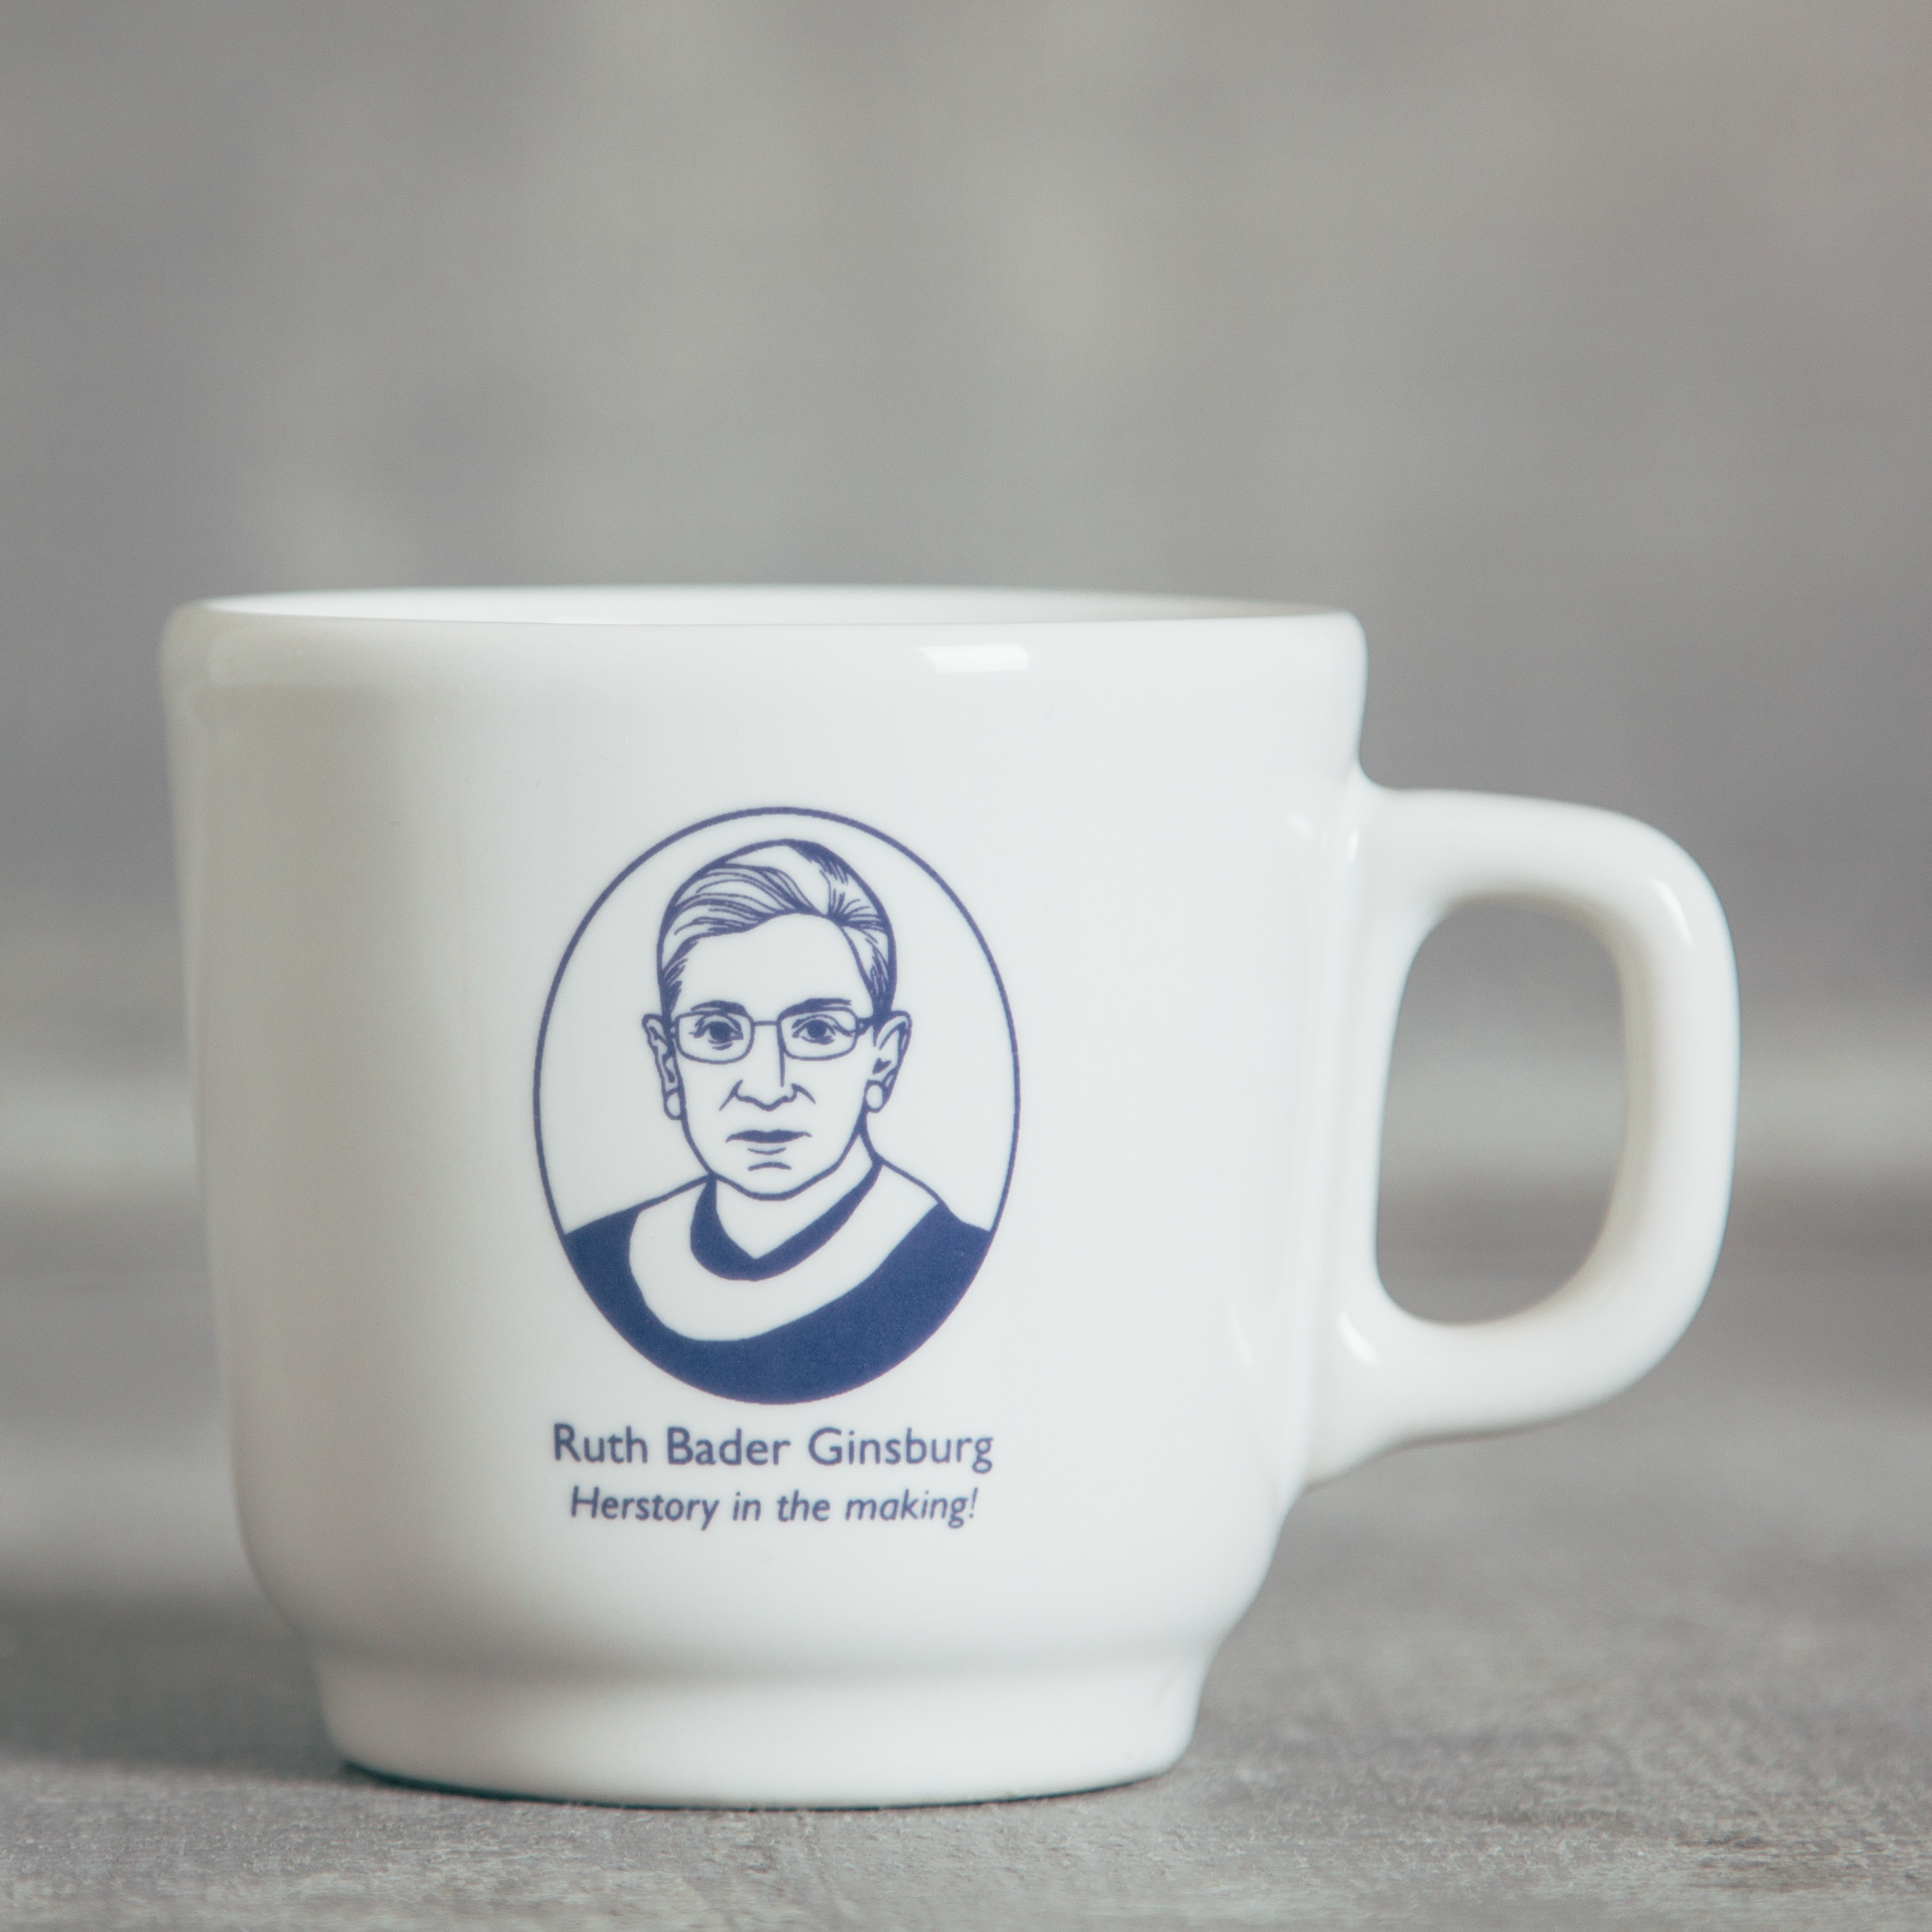 Ruth Bader Ginsburg Mug Relish Decor